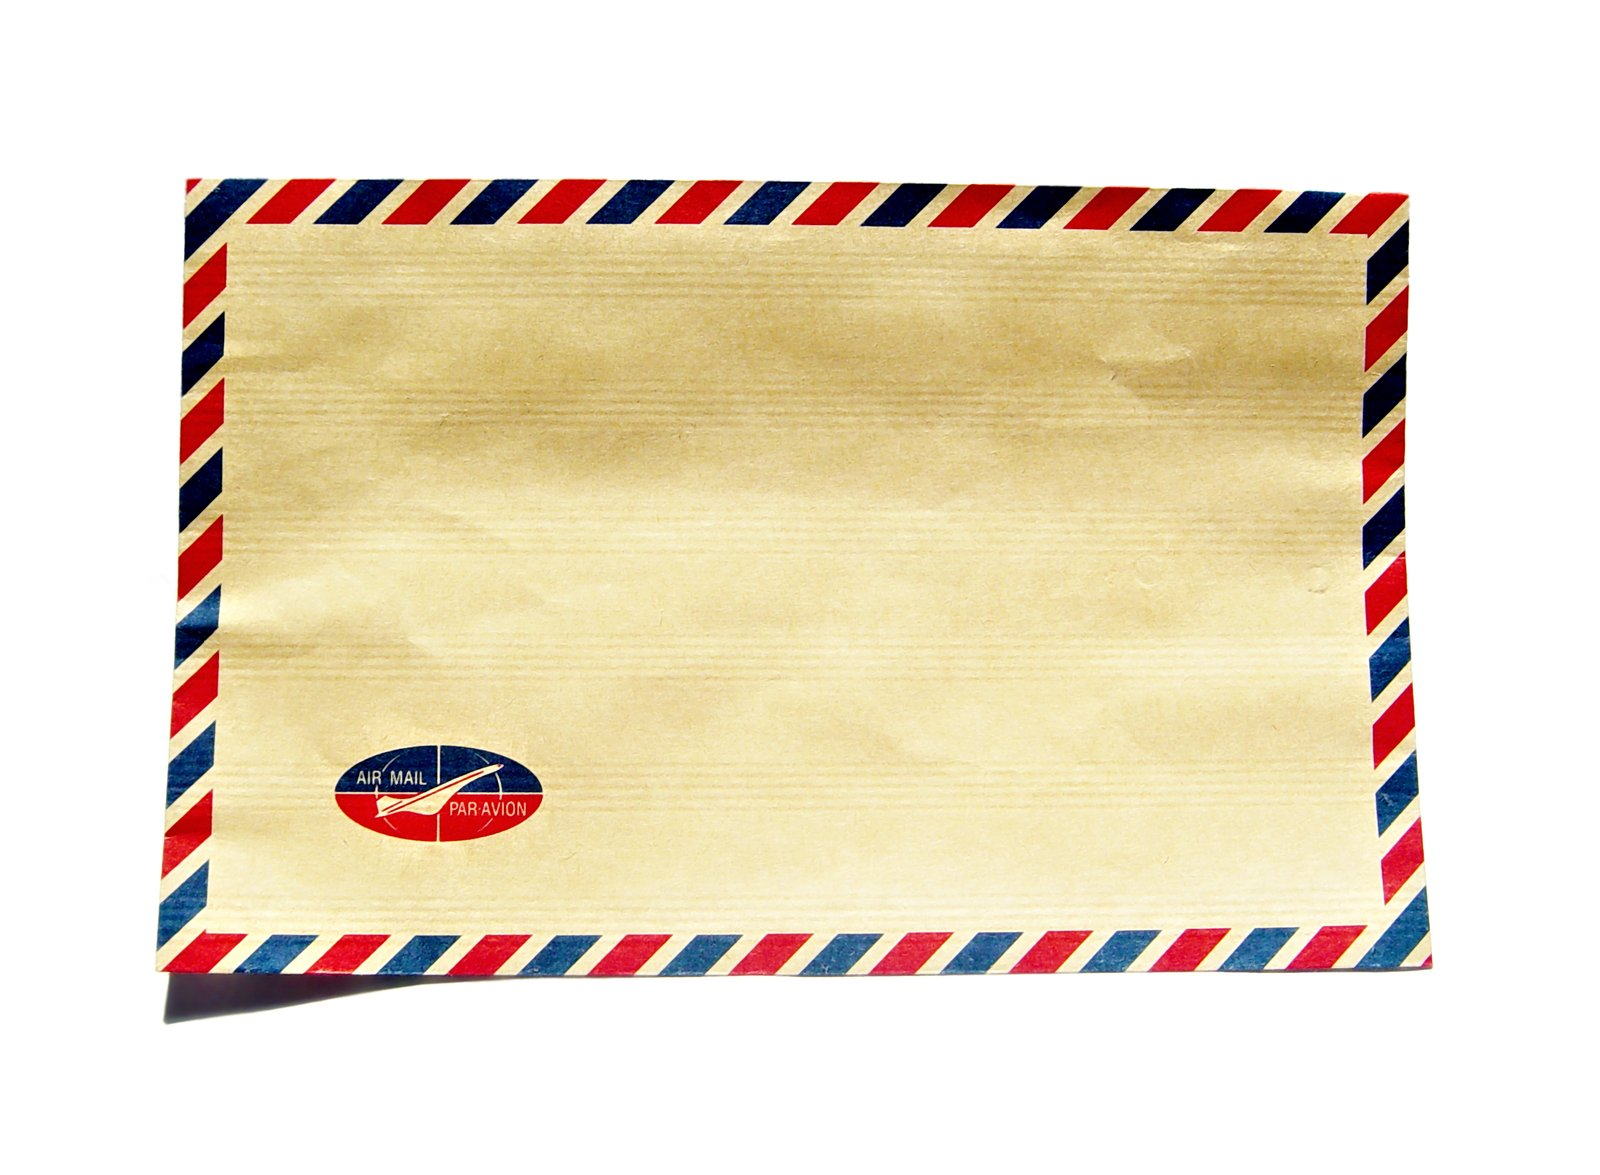 A brown envelope